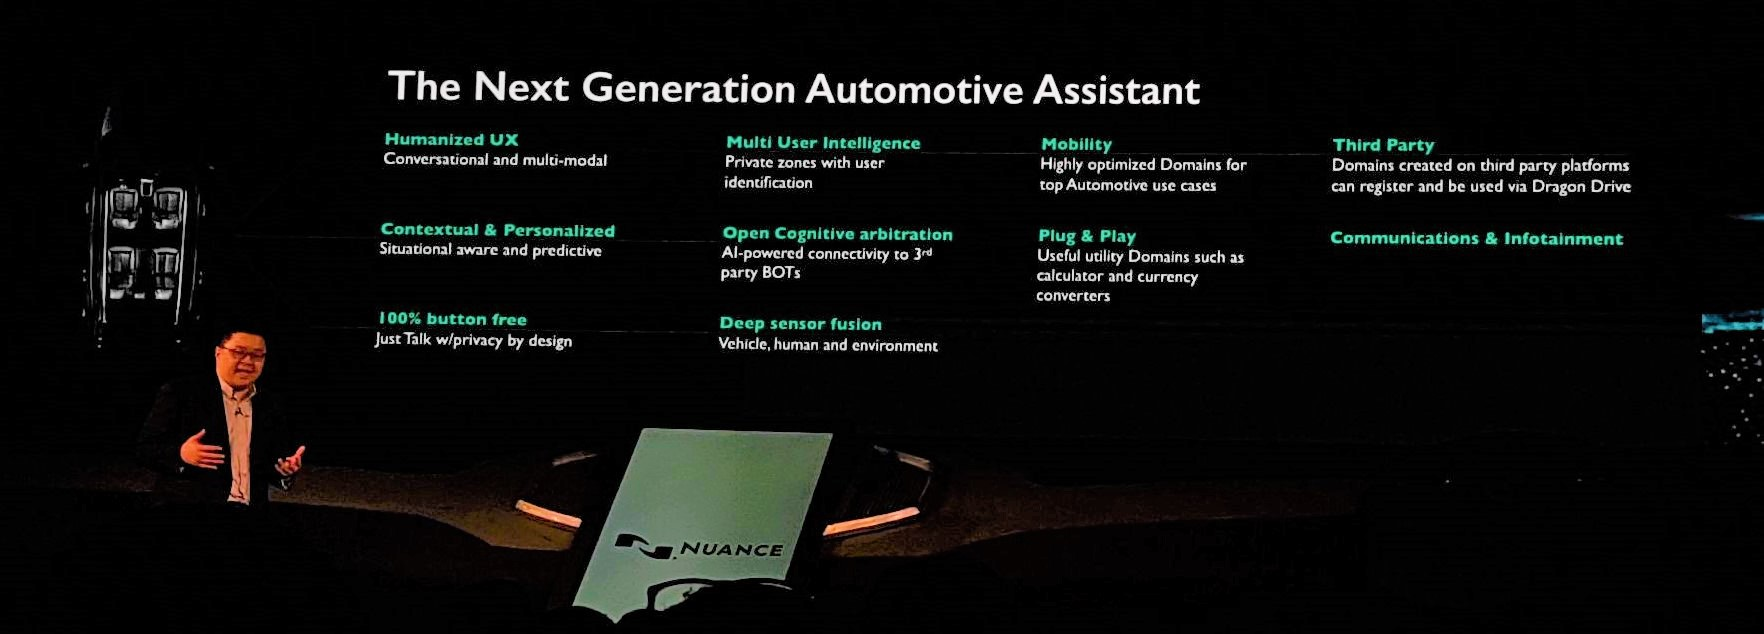 MG Hector: India's First Internet Smart Car with AI Capabilities 3